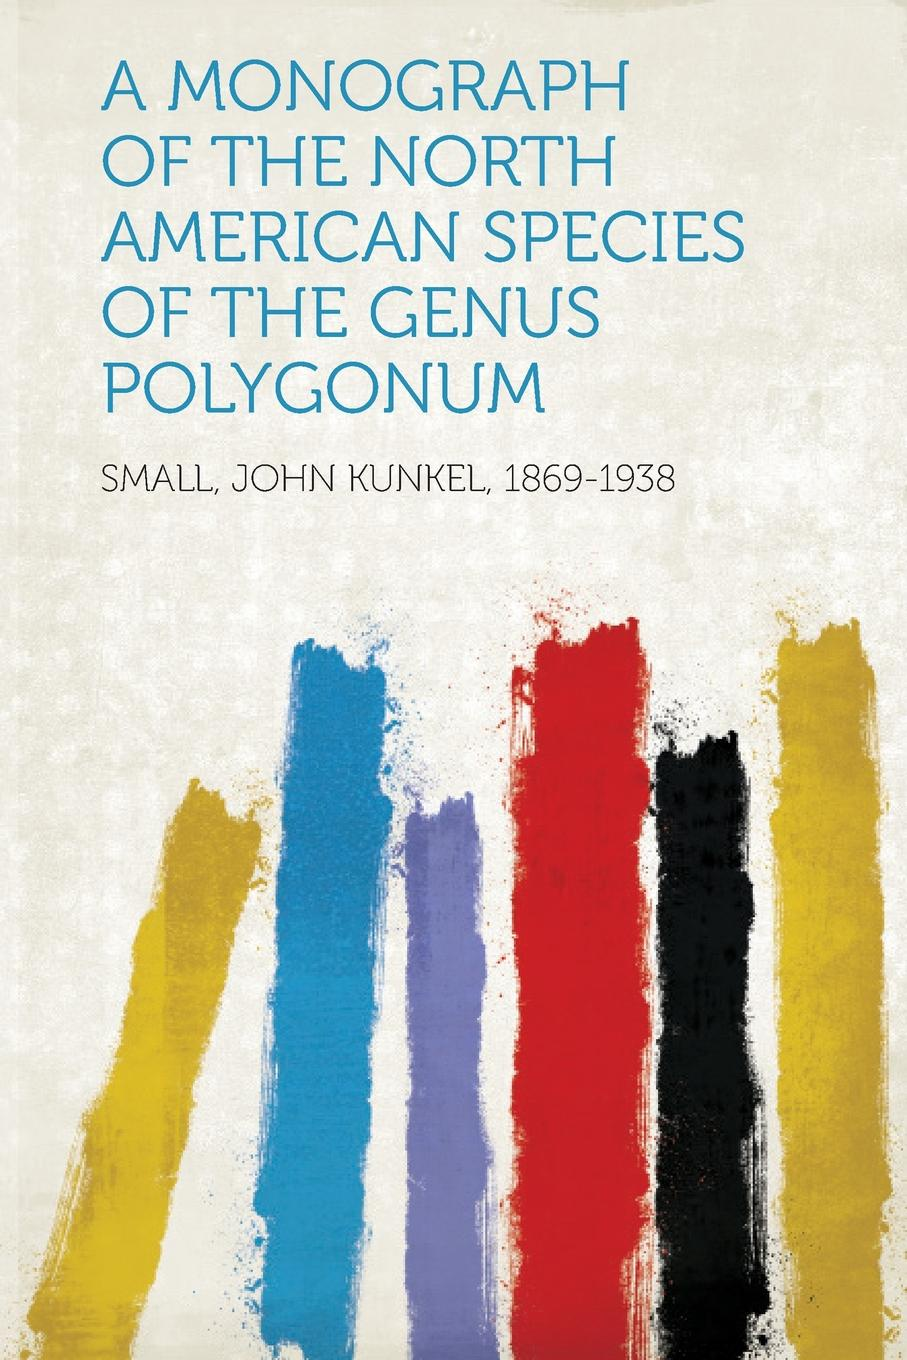 A Monograph of the North American Species Genus Polygonum